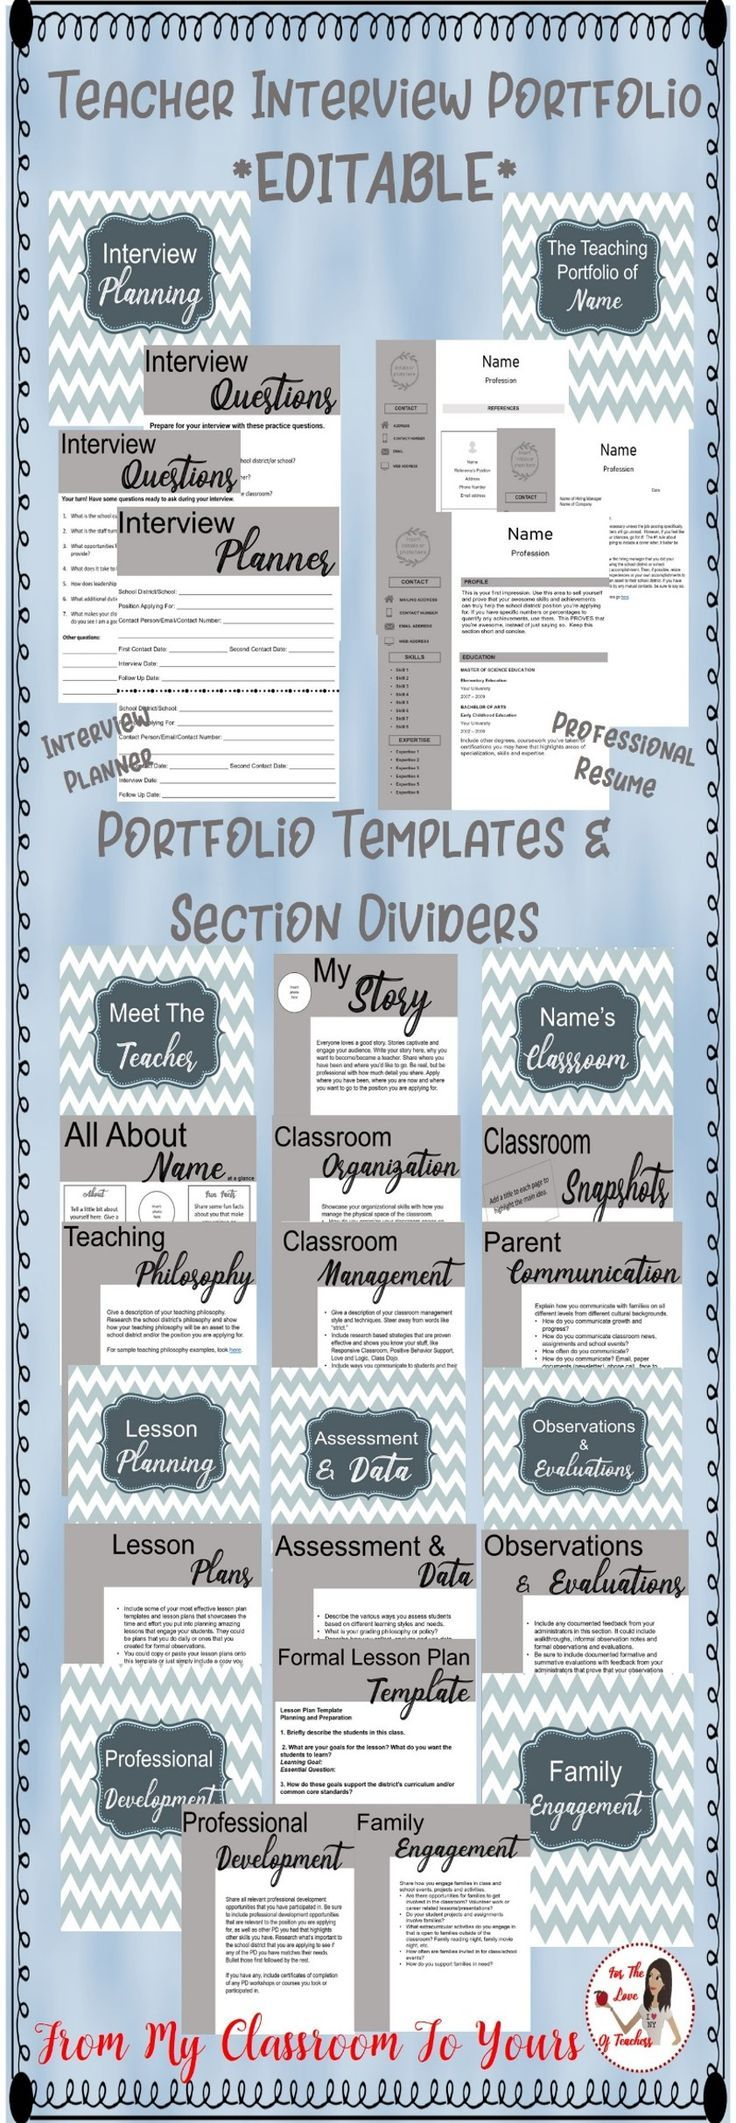 Whether you are a new teacher, a veteran teacher, or are looking to change school districts or positions, a teacher's portfolio  is a must have to showcase your best work to land the job you want. It Includes completely editable and professional templates. Get it at For The Love of Teachers Shop. #teachers #portfolio #interview